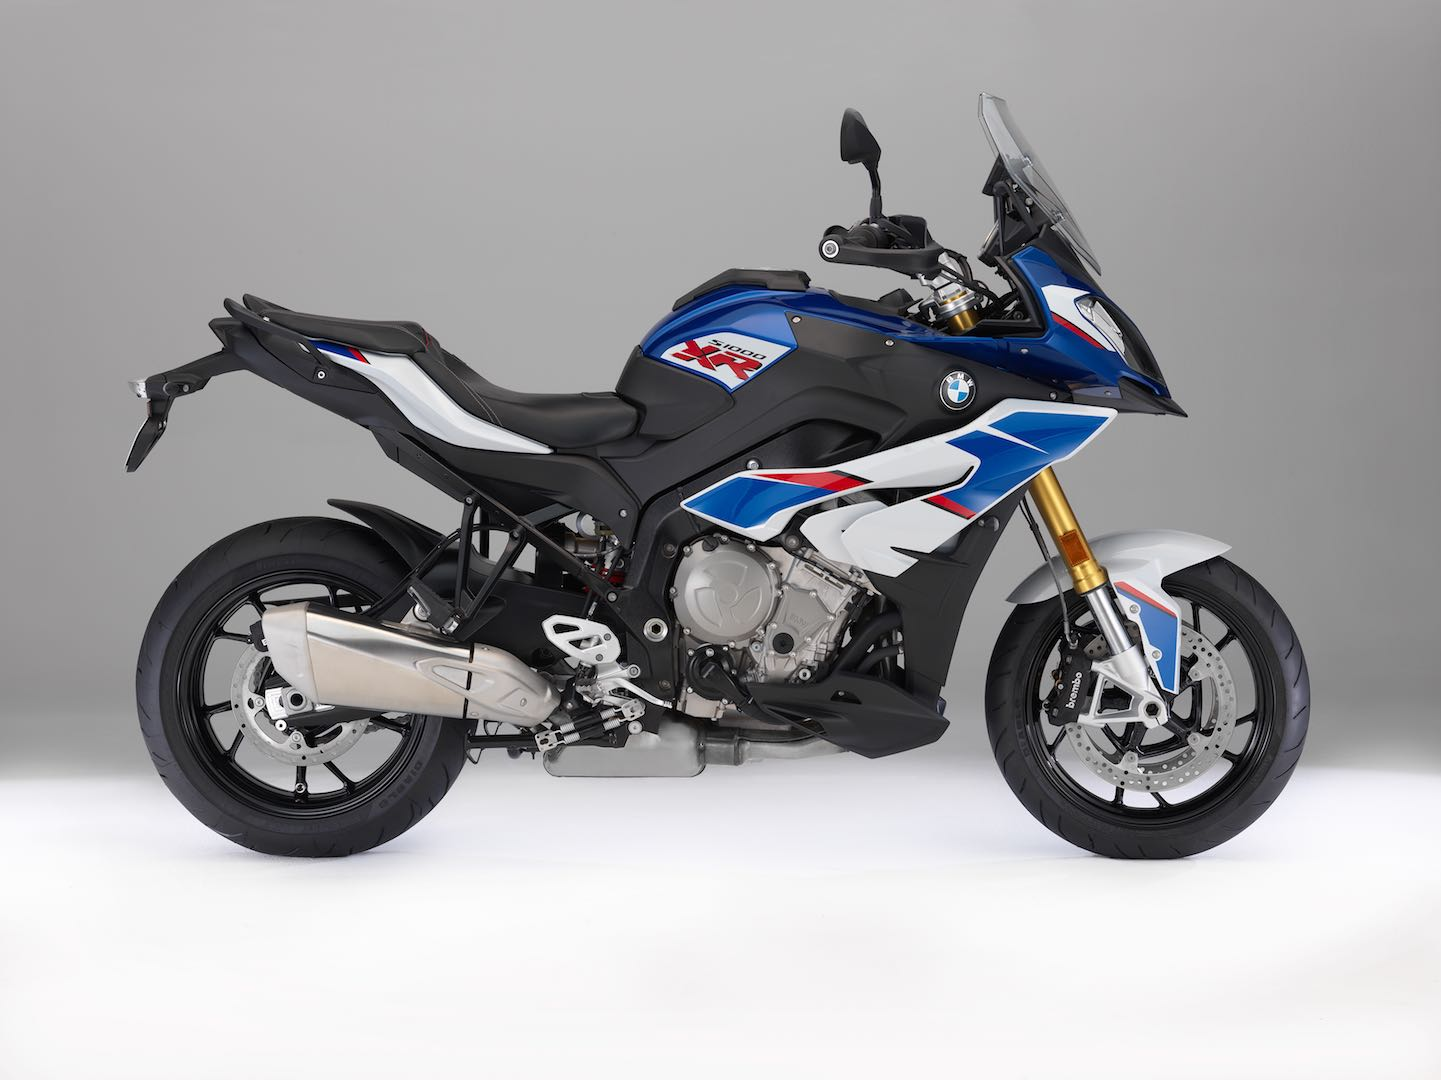 2018 bmw s 1000 xr buyer 39 s guide specs price. Black Bedroom Furniture Sets. Home Design Ideas